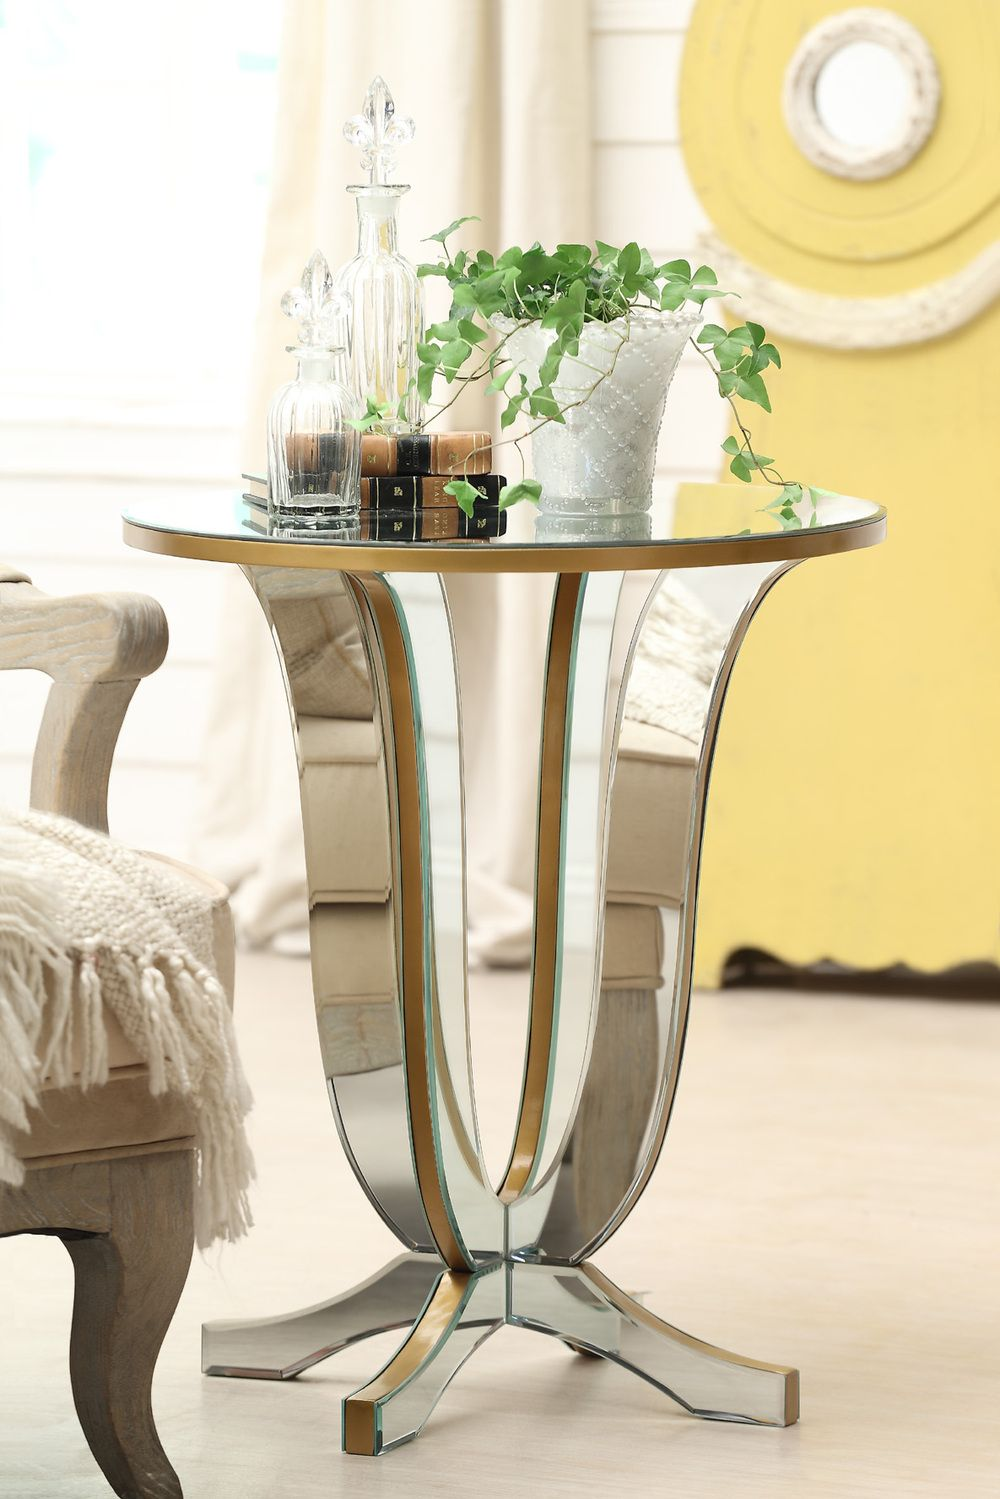 glass end tables for living room. White Throw Blanket On Living Room Chair Furniture Feat Amazing Round Side  Table With Ivy Display Accent Your Interior with Fancy Attractive Mirrored Subtract And Curve Leg